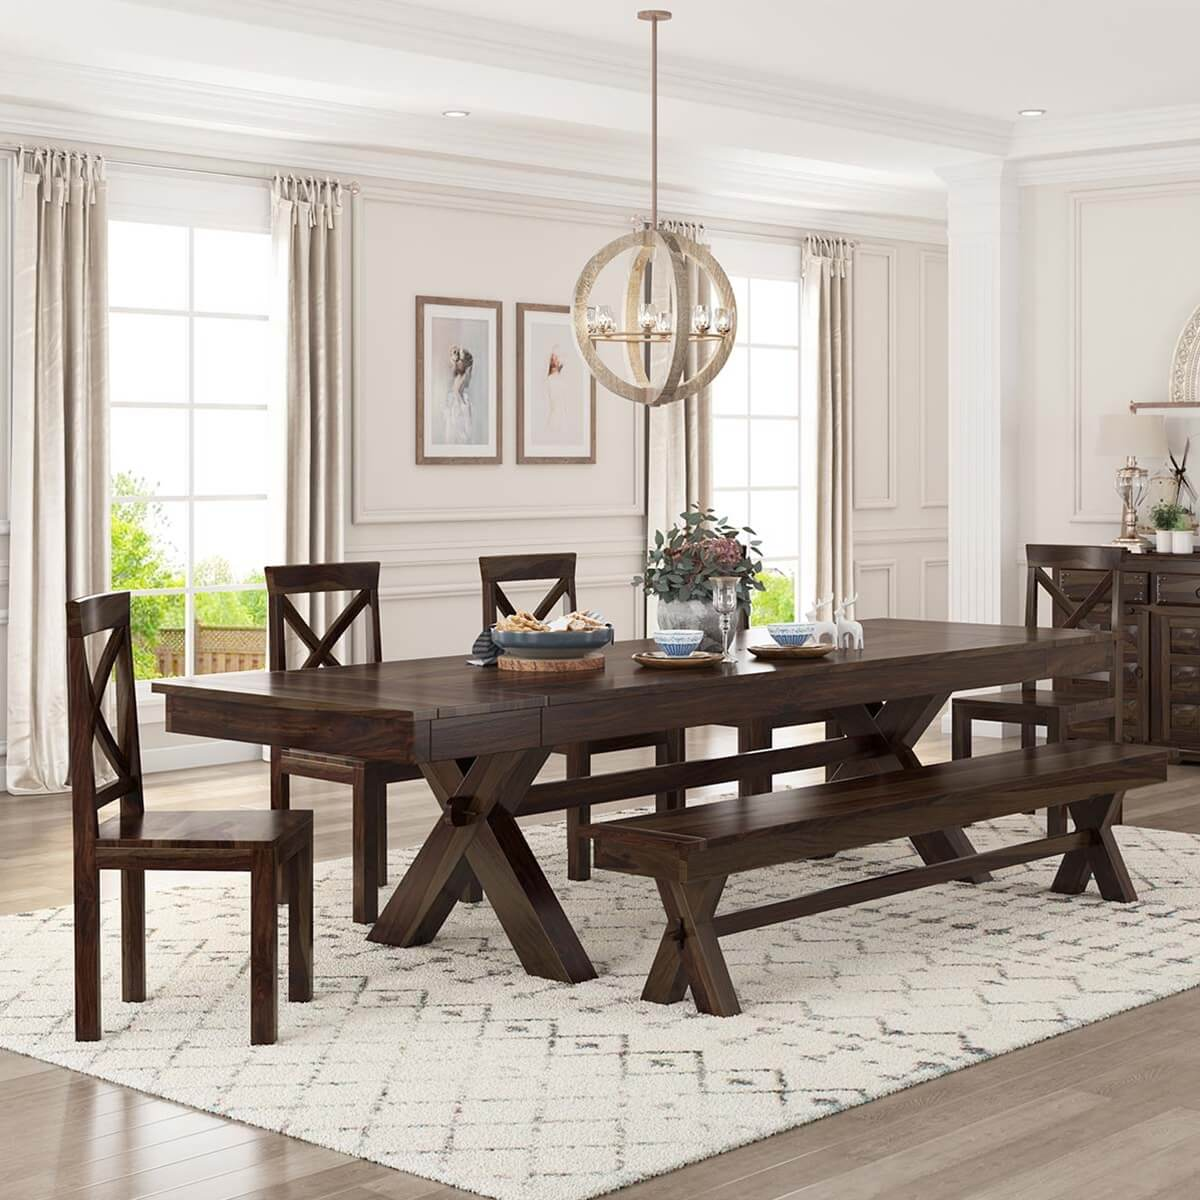 indoor picnic style dining table bench set with extensions